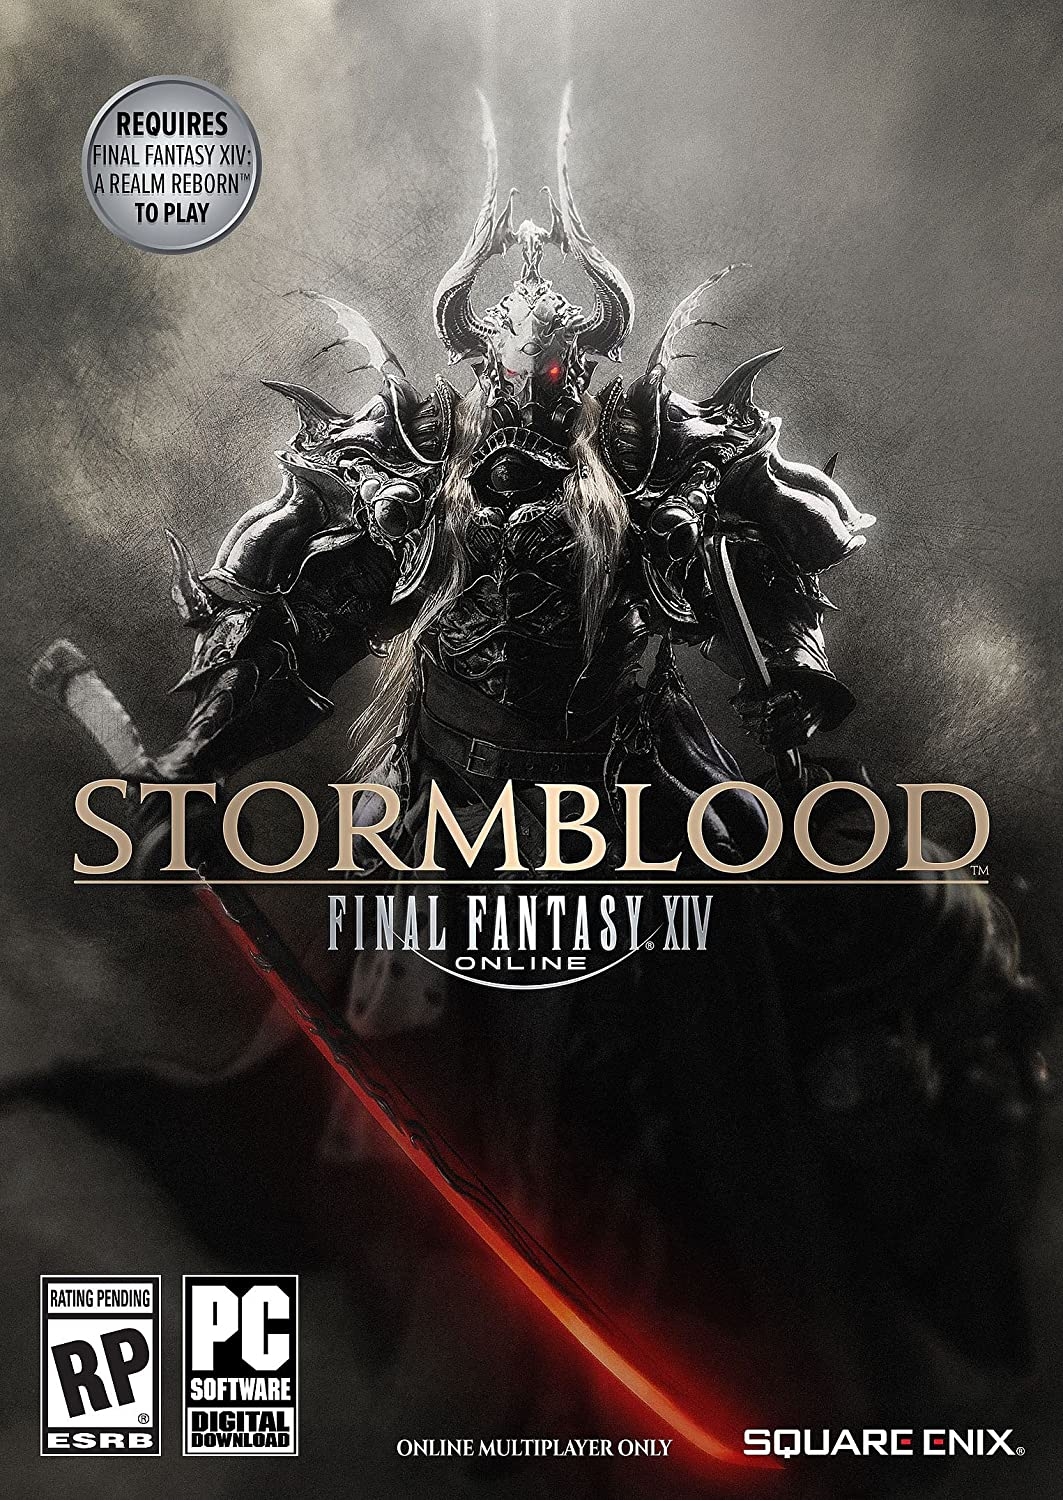 Amazon.com: Final Fantasy XIV: Stormblood [Online Game Code]: Video Games